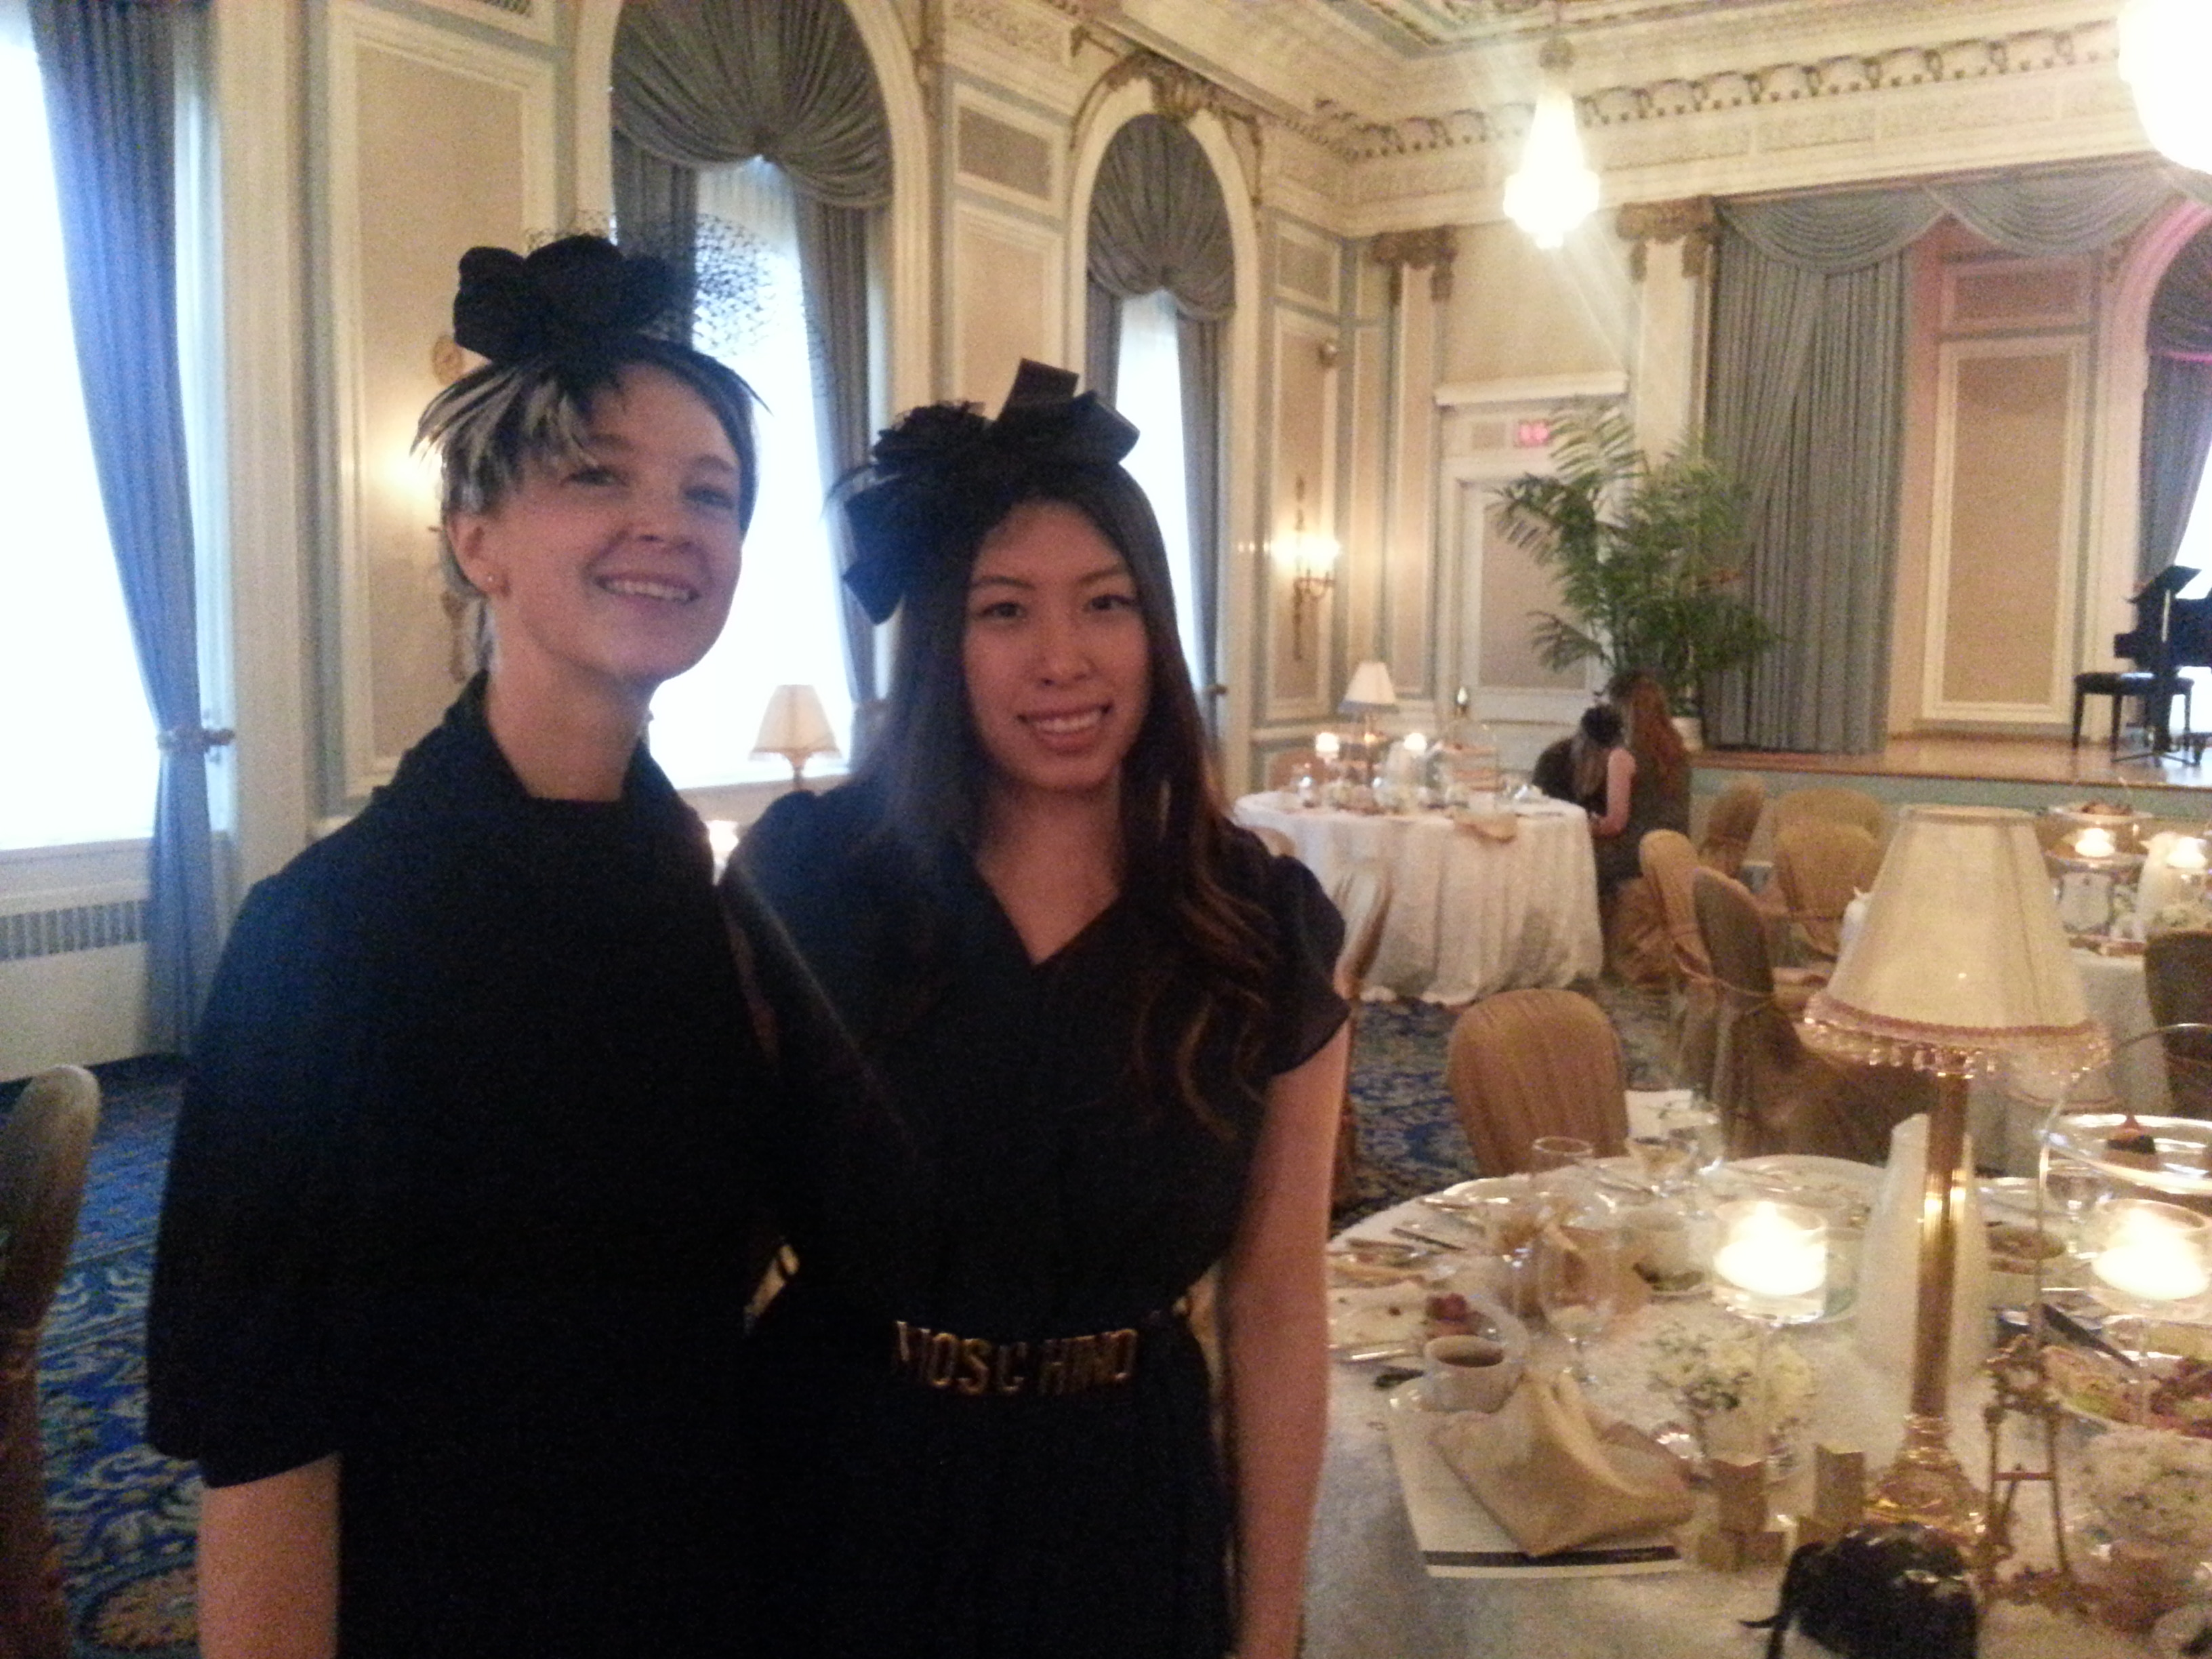 Local fashion blogger, Linda Sui, made her own fascinator too so we had to get our picture taken together after we had admired one another's creativity!